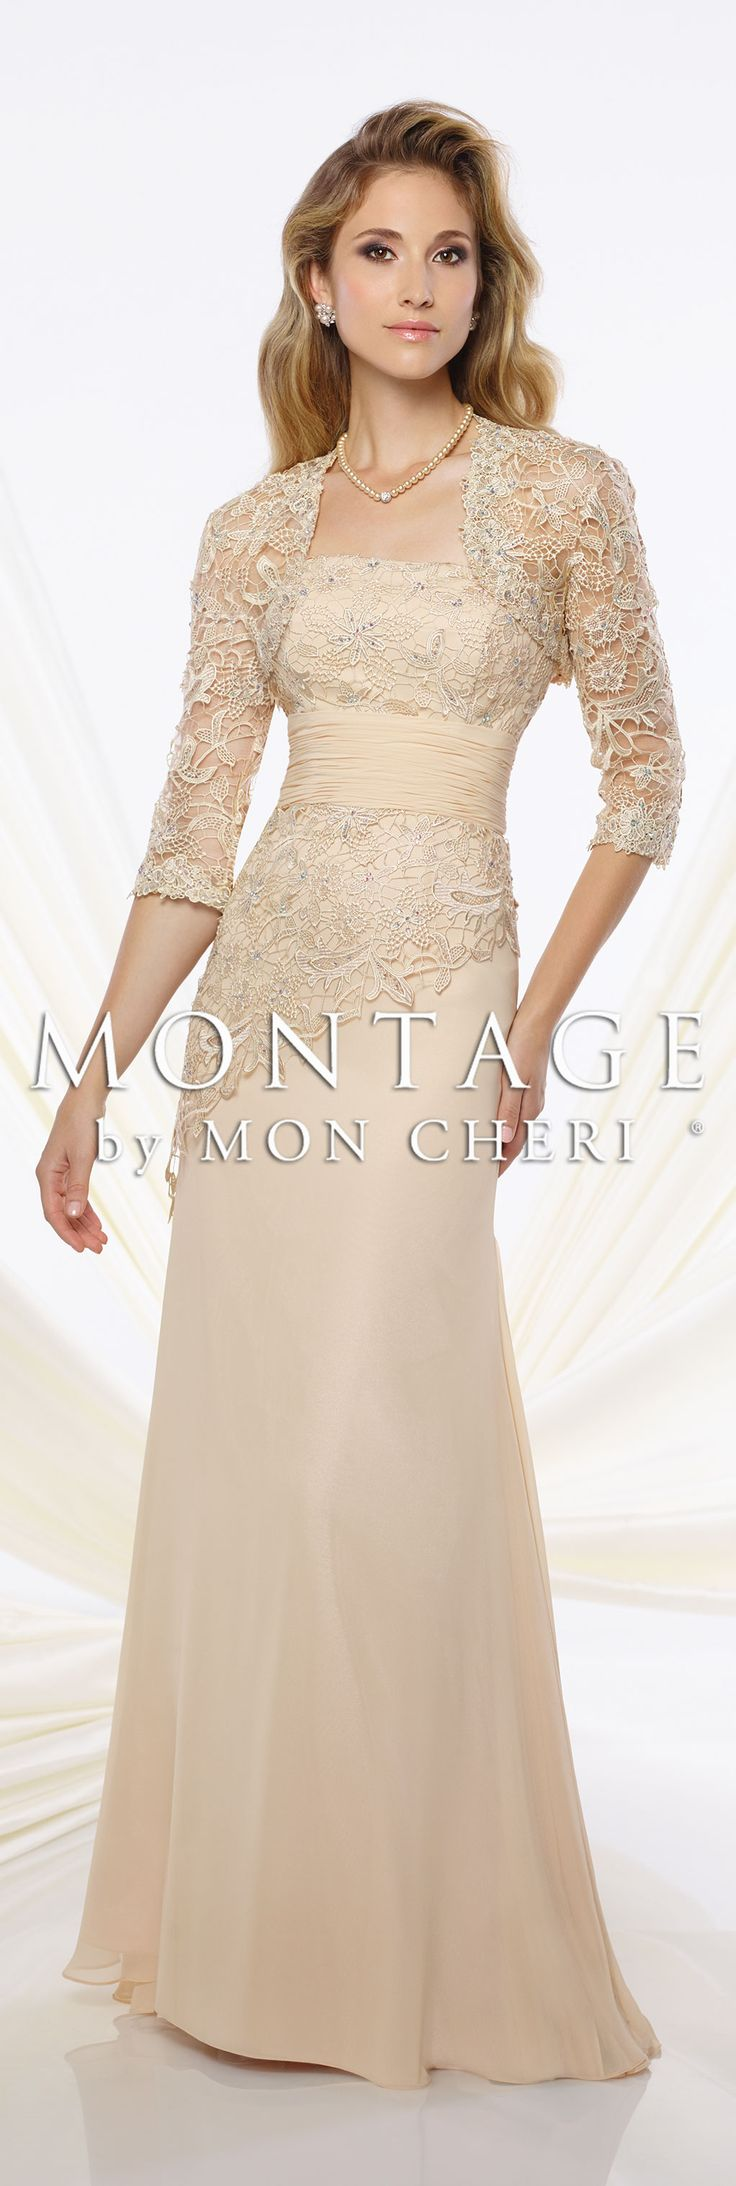 Montage by Mon Cheri Spring 2016 - Style No. 116944 #eveninggowns